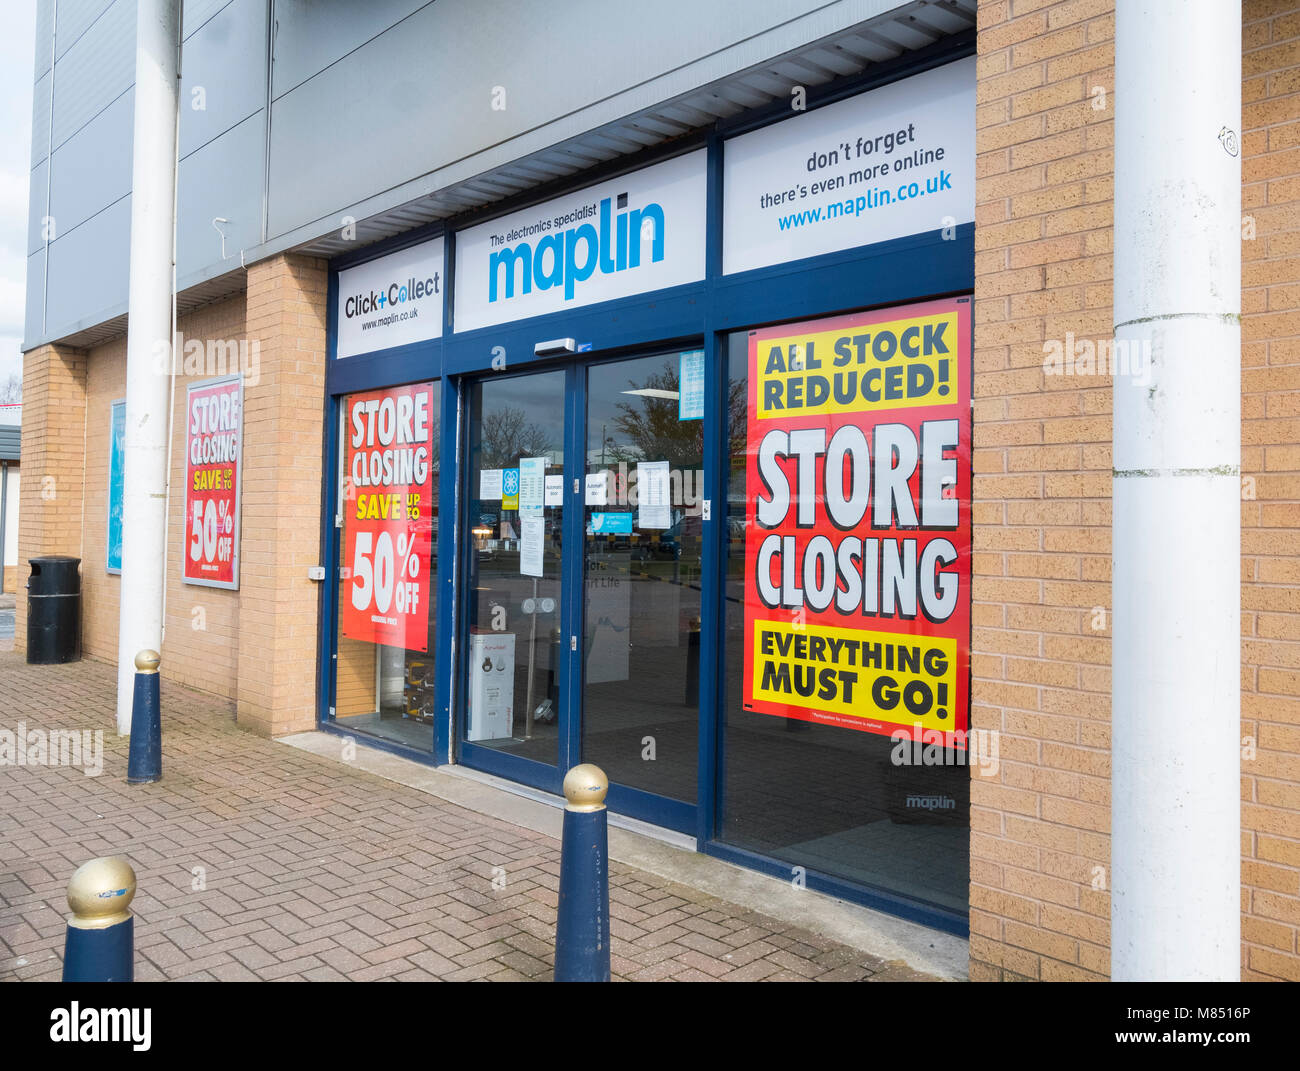 Maplin store closing down sale at Bridge Retail Park, Telford, Shropshire, England, UK. - Stock Image